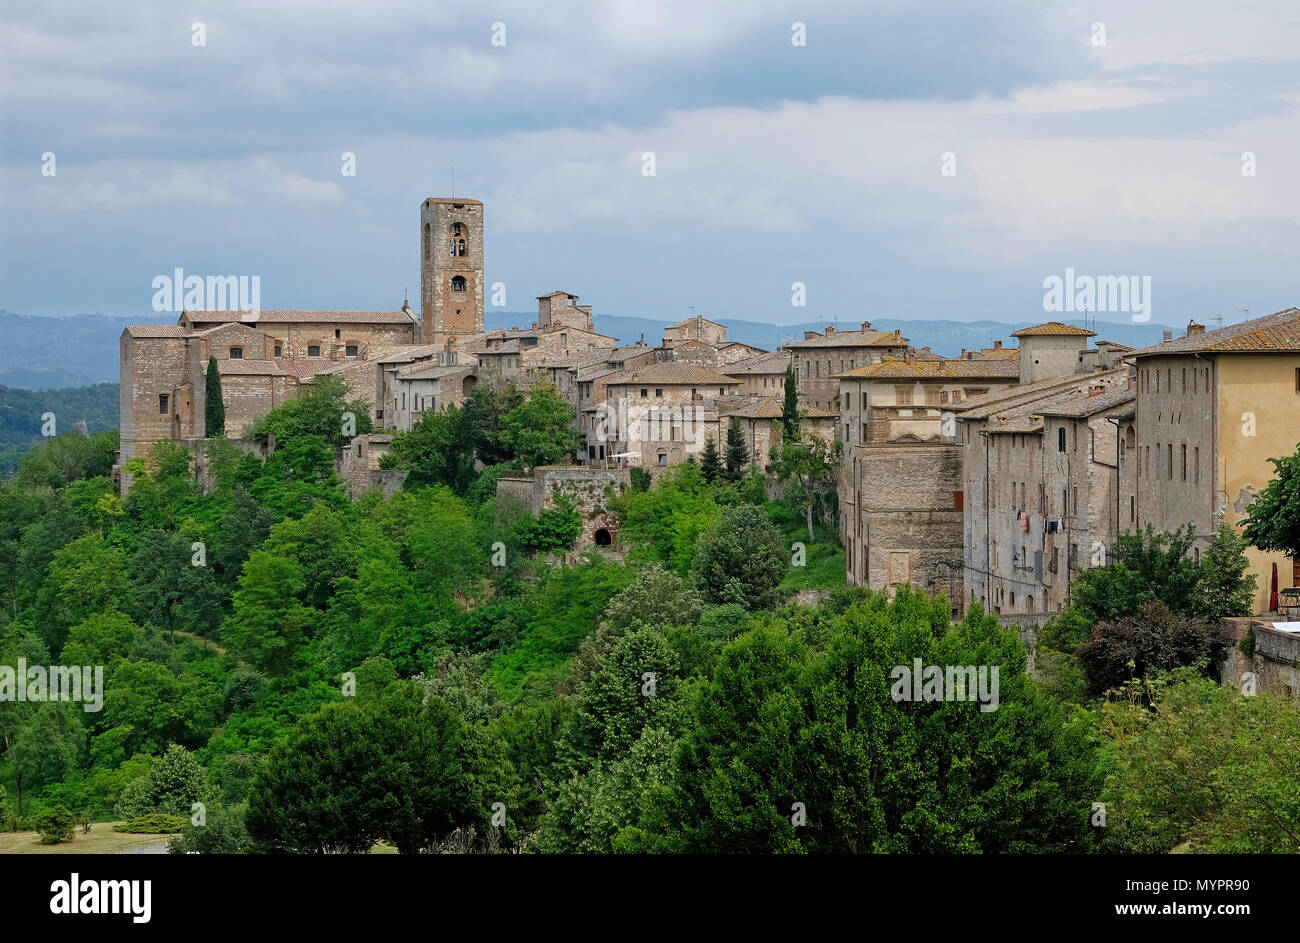 colle di val d'elsa, tuscany, italy - Stock Image